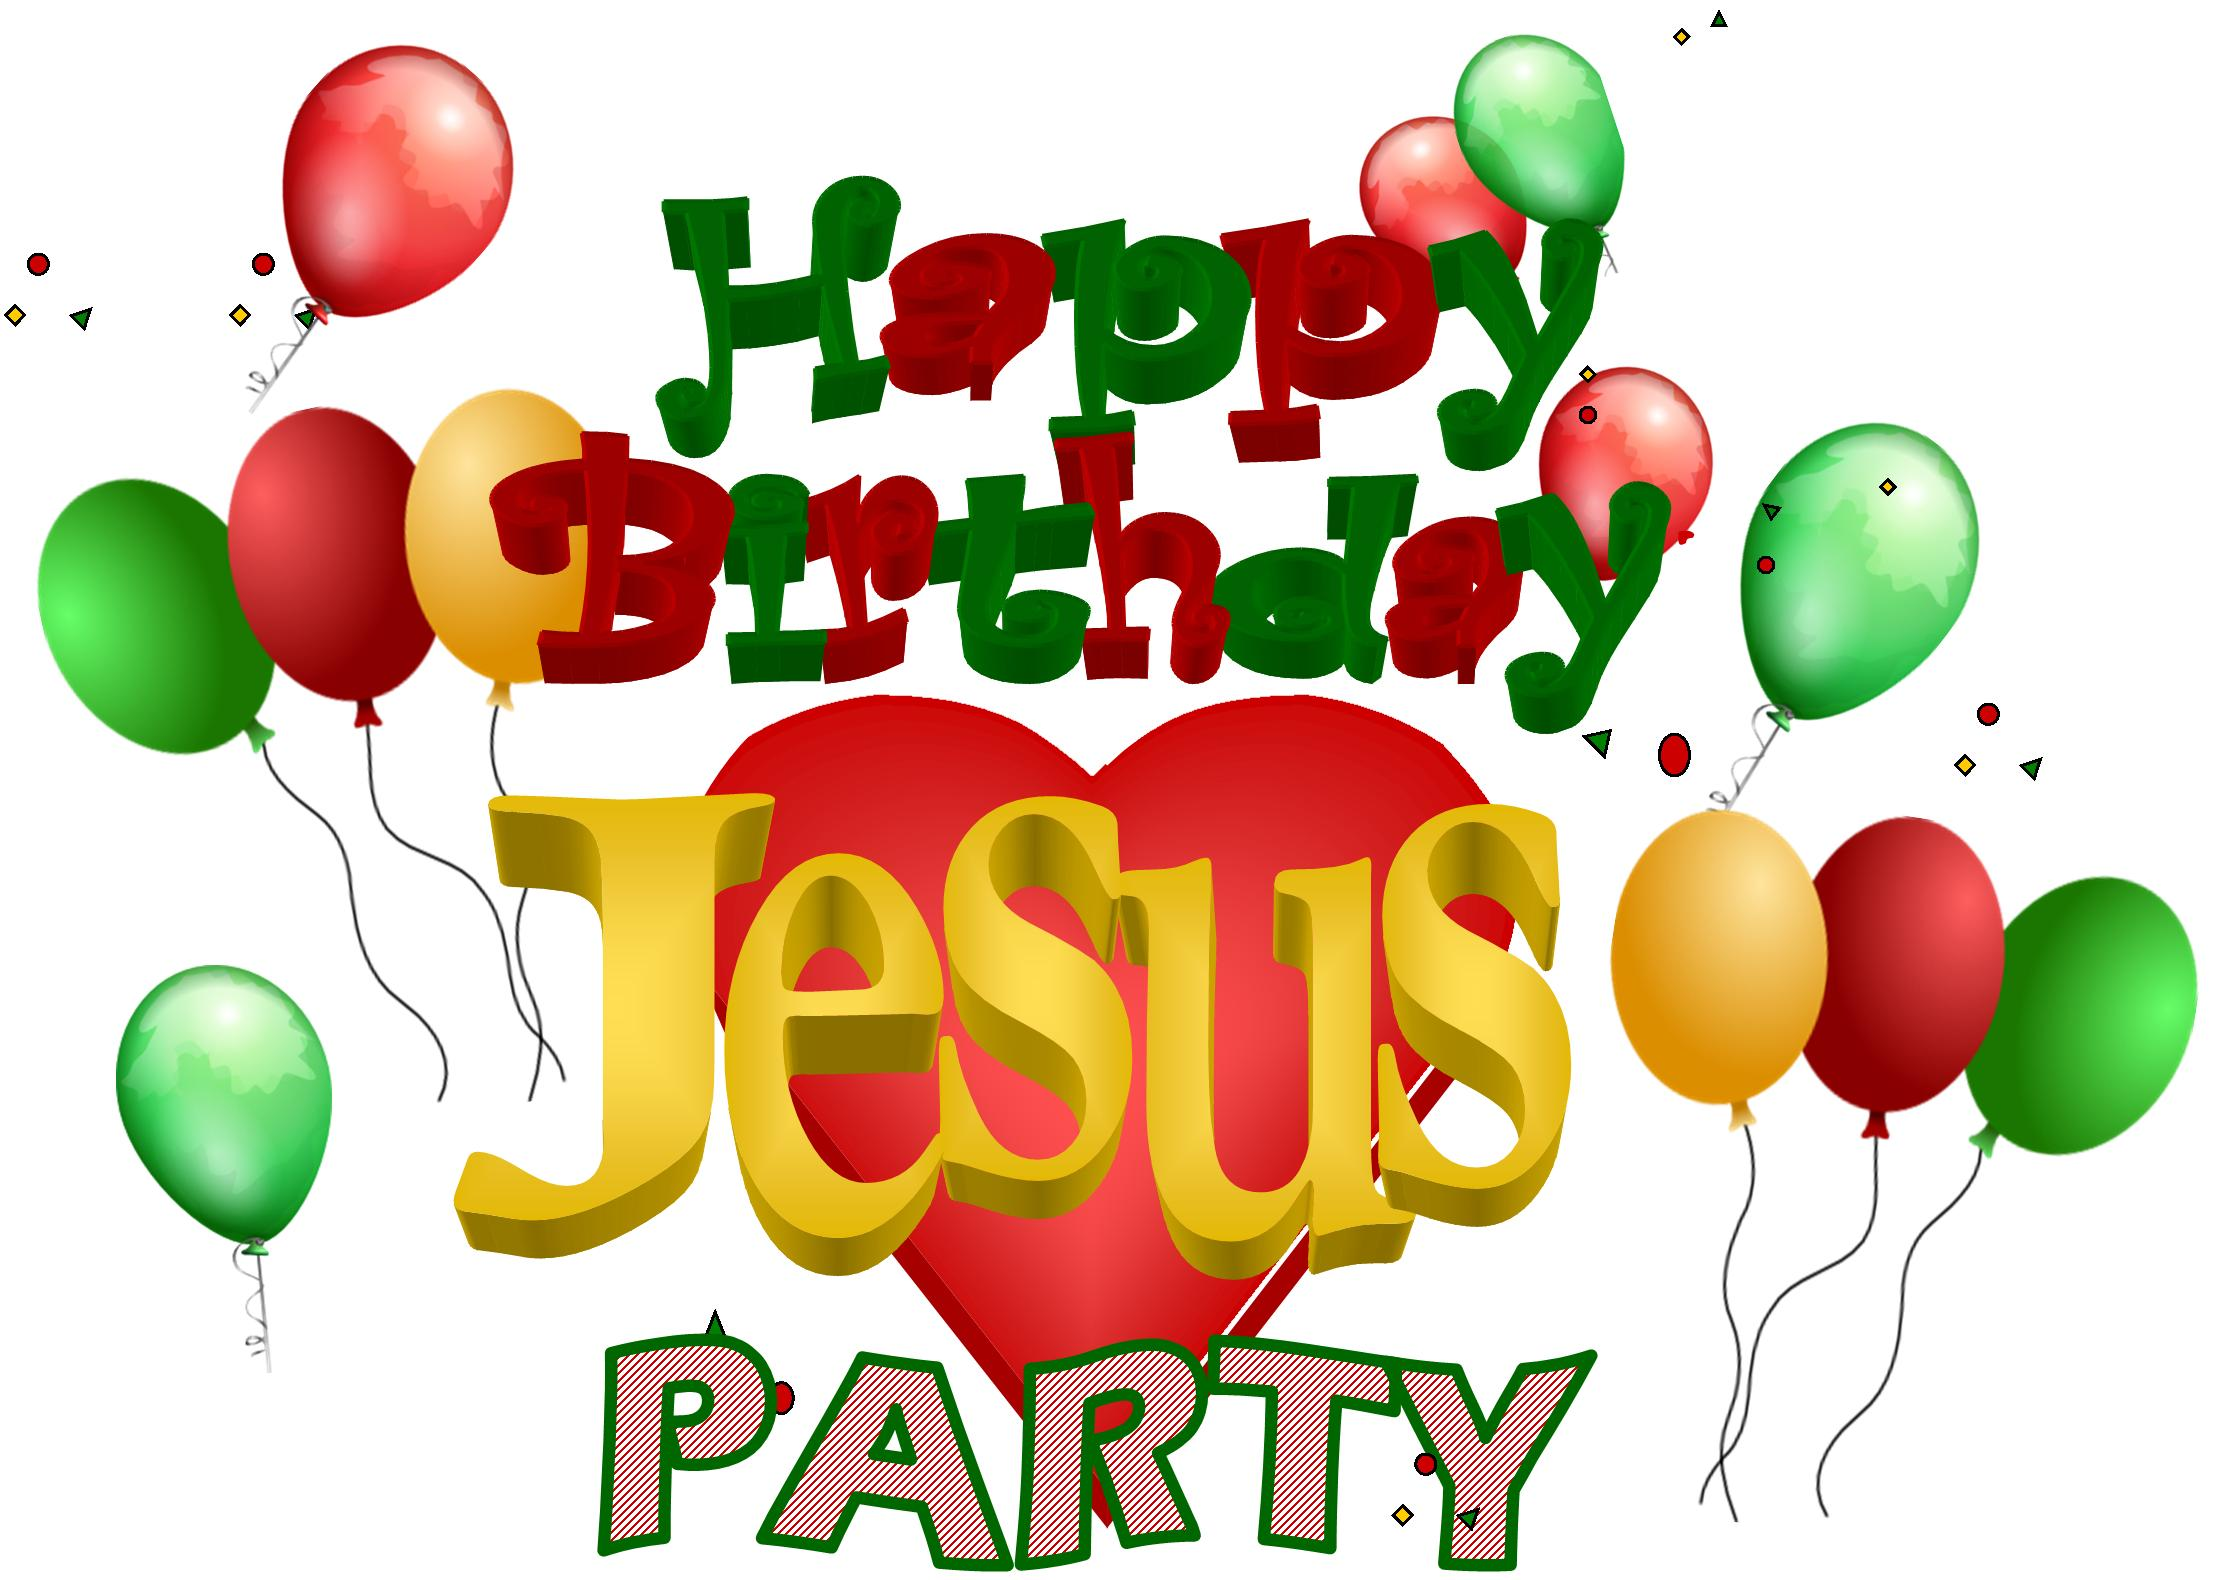 Birthday Party For Jesus Clipart.